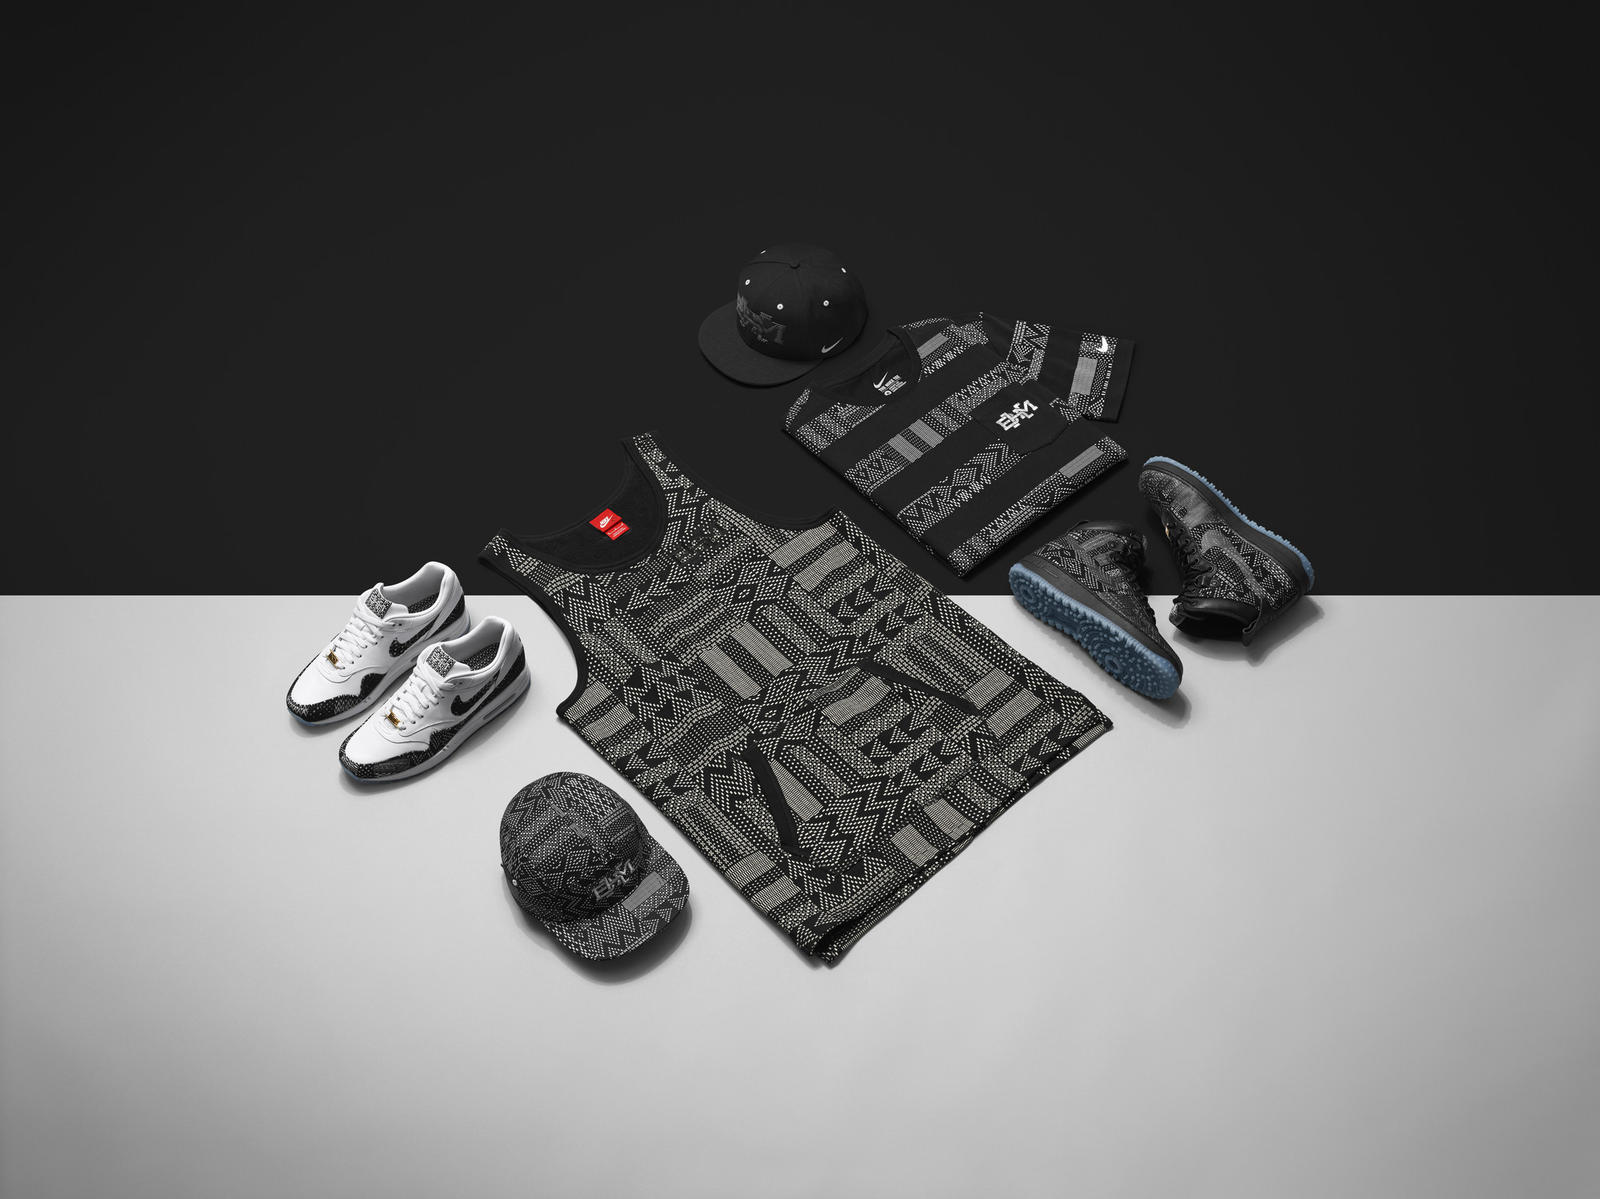 bcf445e0c2da68 Nike SP15 BHM NSW MENS COLLECTION Final. 2015 Black History Month  collection of Nike ...